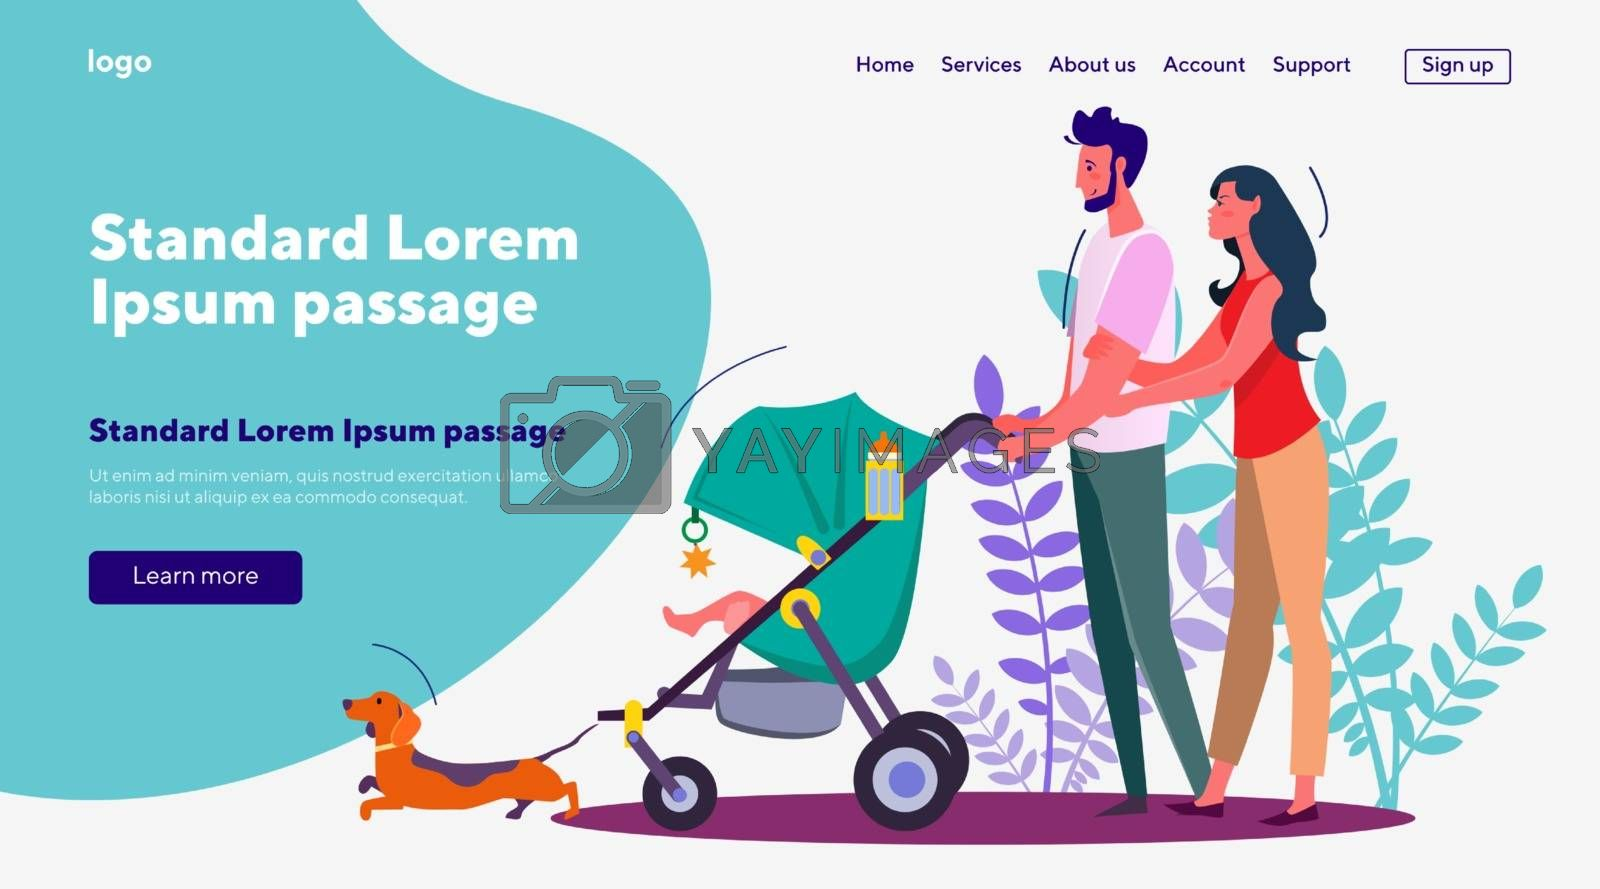 Wife and husband walking with baby in pram and dog. Couple strolling with kid and pet flat vector illustration. Family and parenting, pet animal concept for banner, website design or landing web page